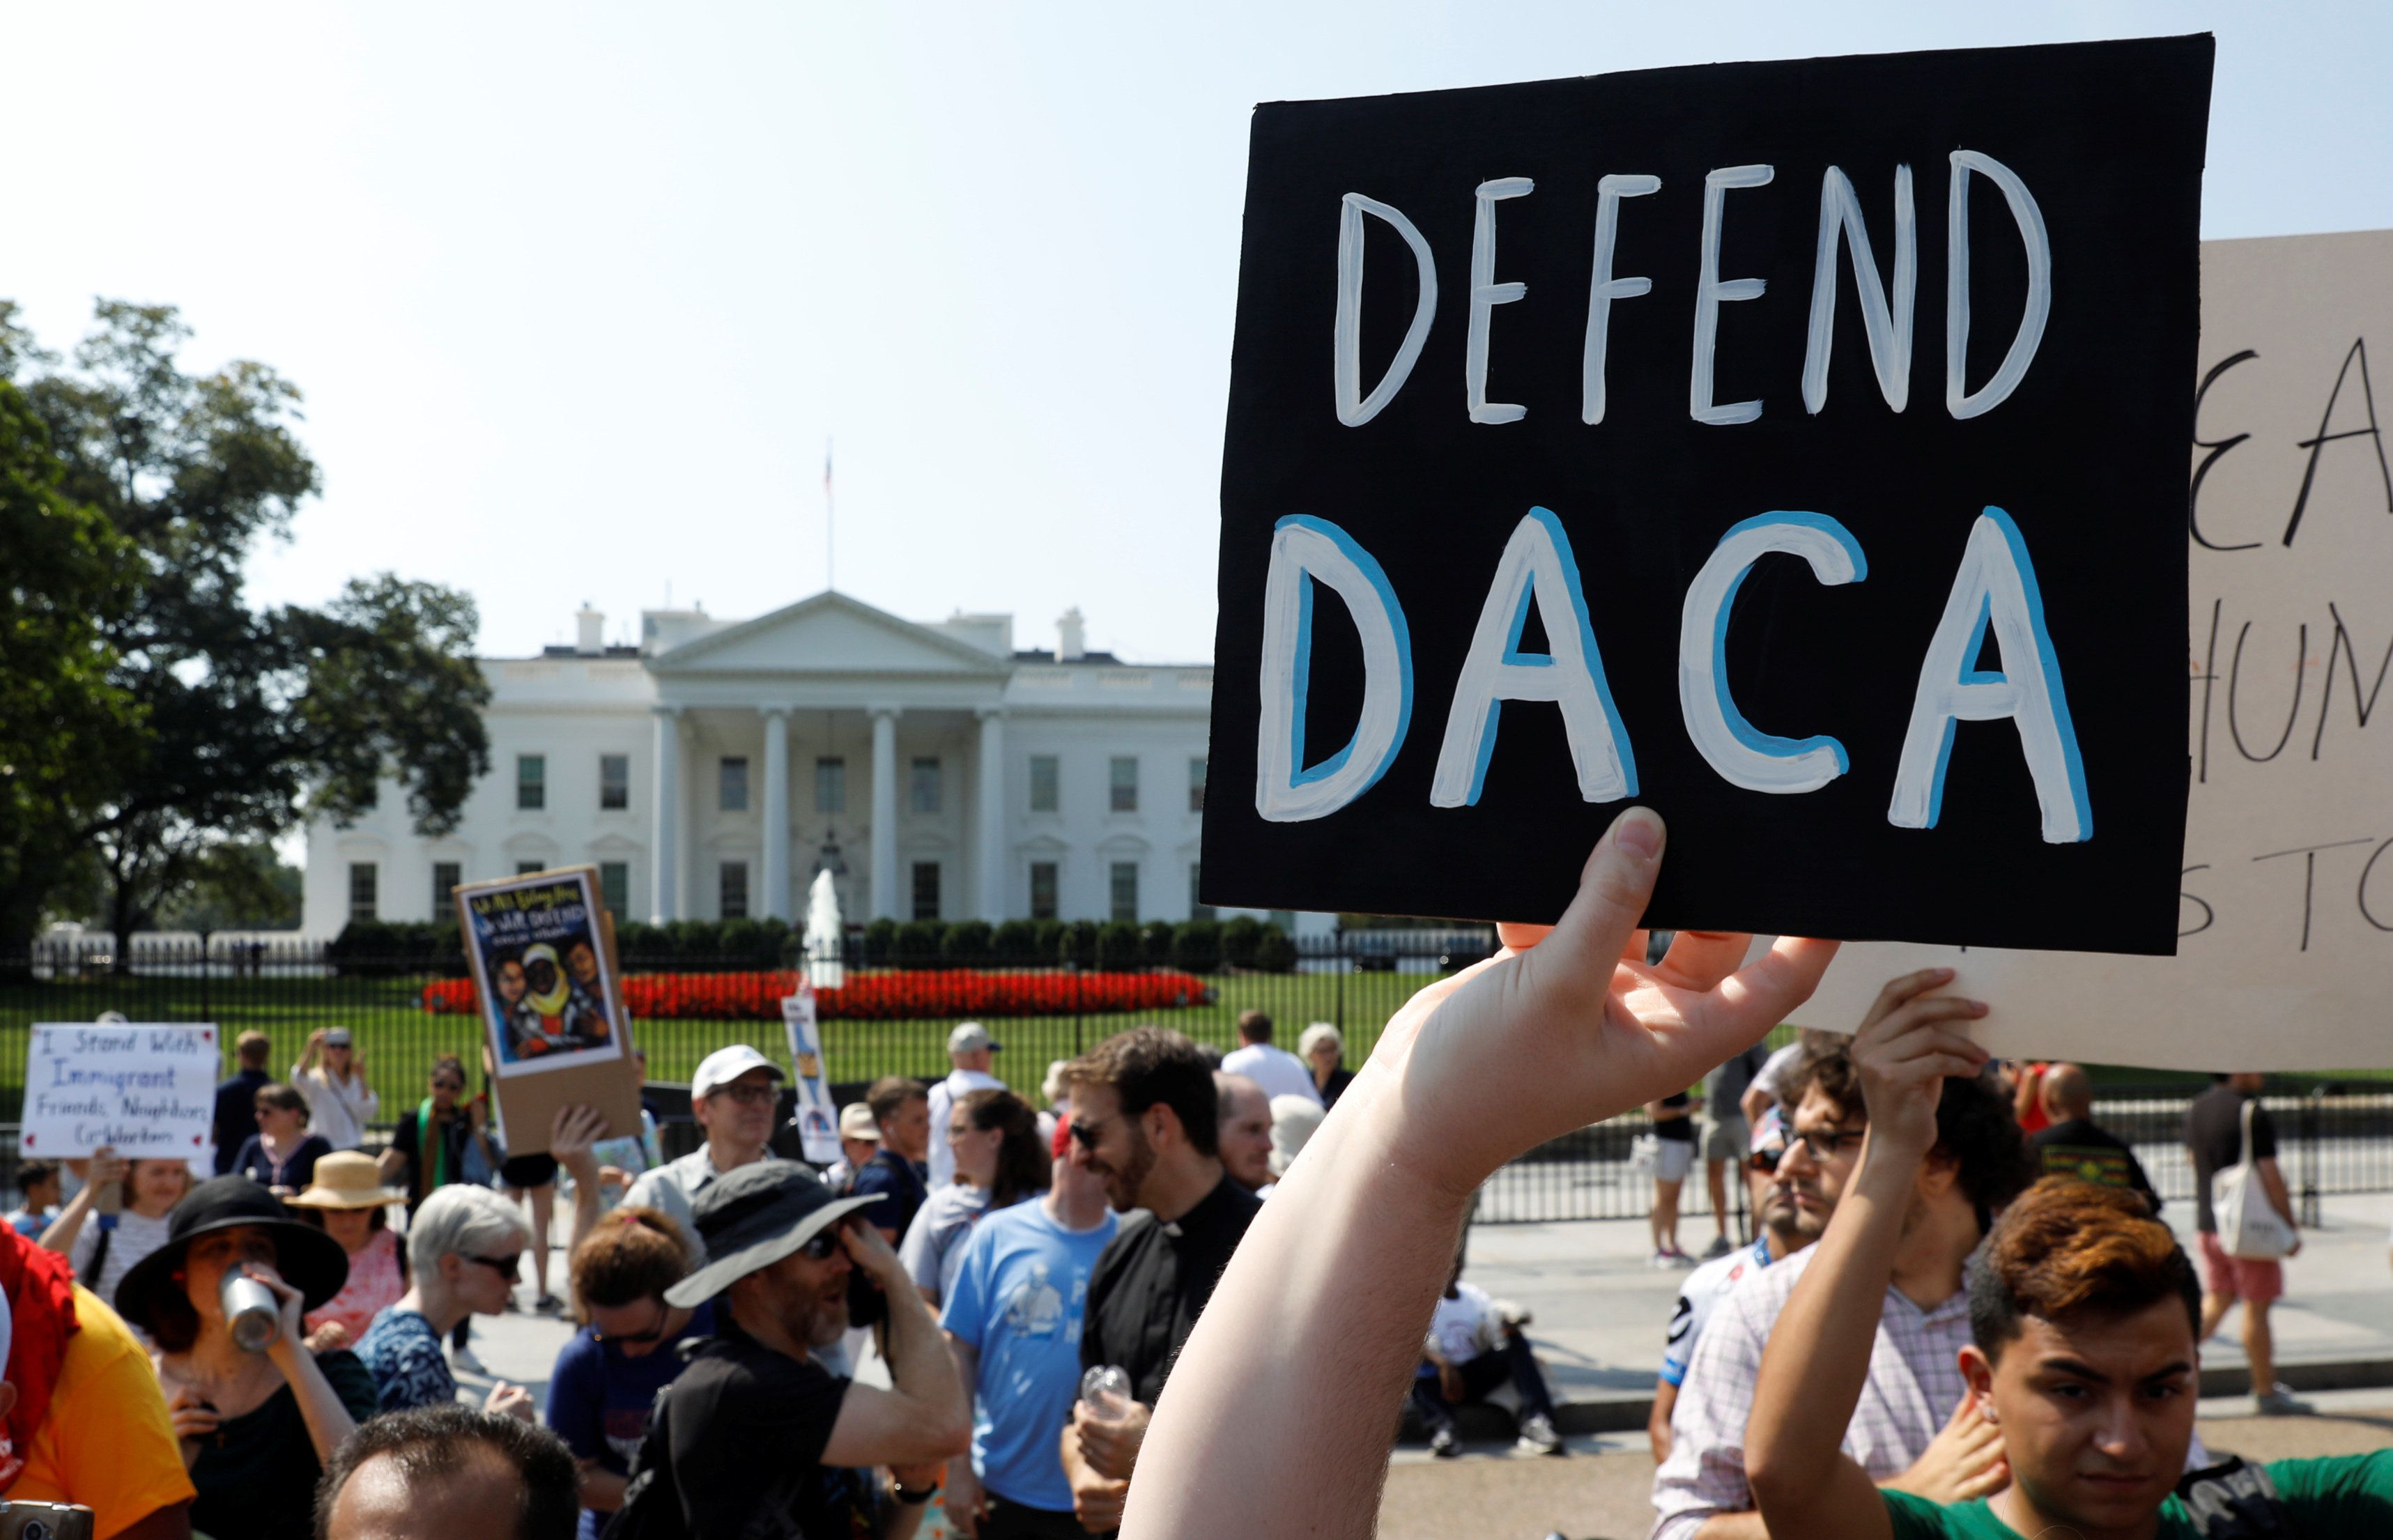 Reaction to judge's decision to block the end of DACA